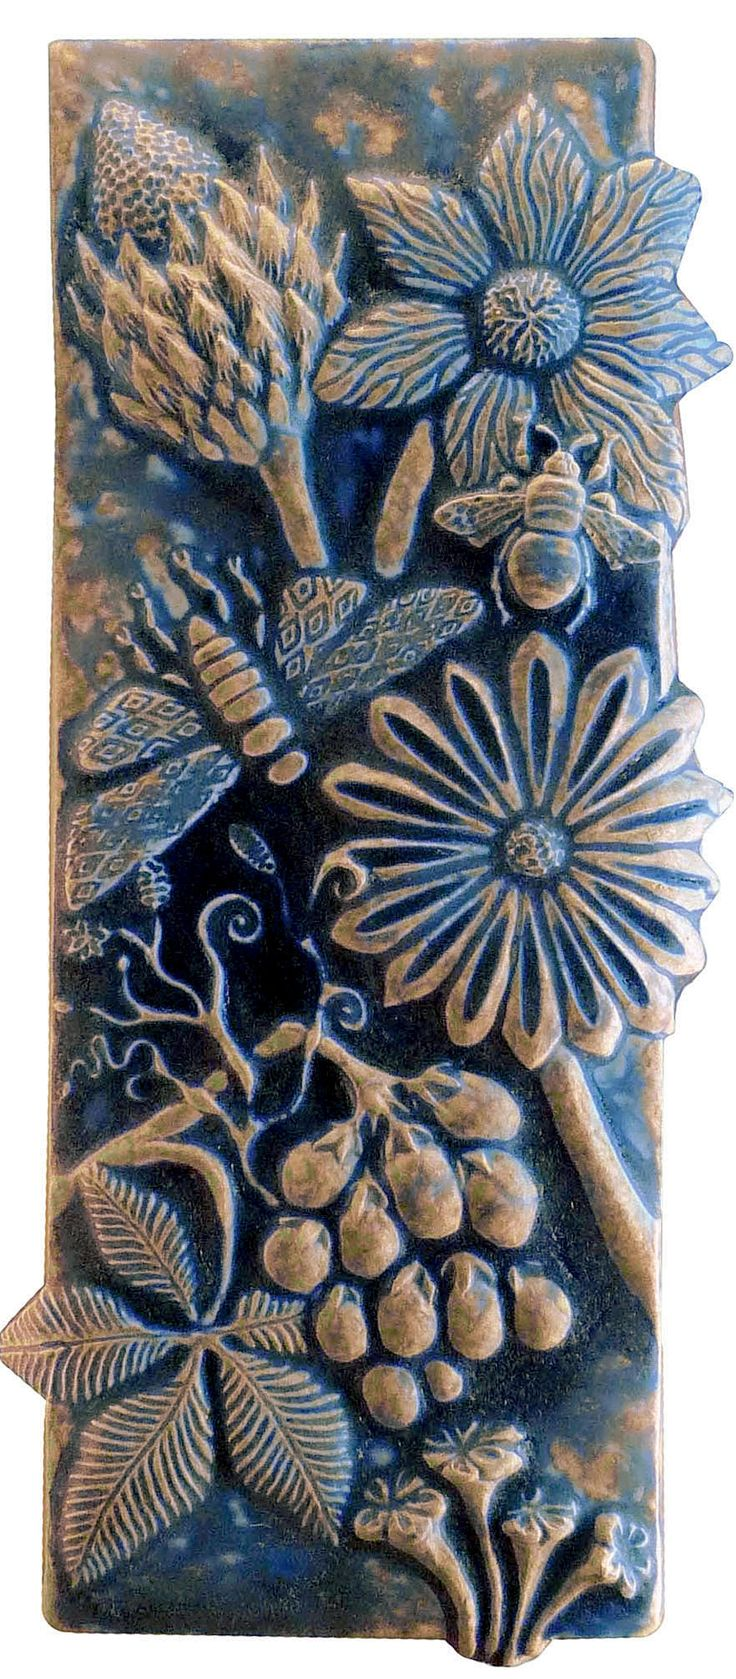 Best 25 ceramic wall tiles ideas on pinterest clay tiles wall botanical and bugs ceramic tile in night sky by beth sherman ceramic wall art dailygadgetfo Choice Image